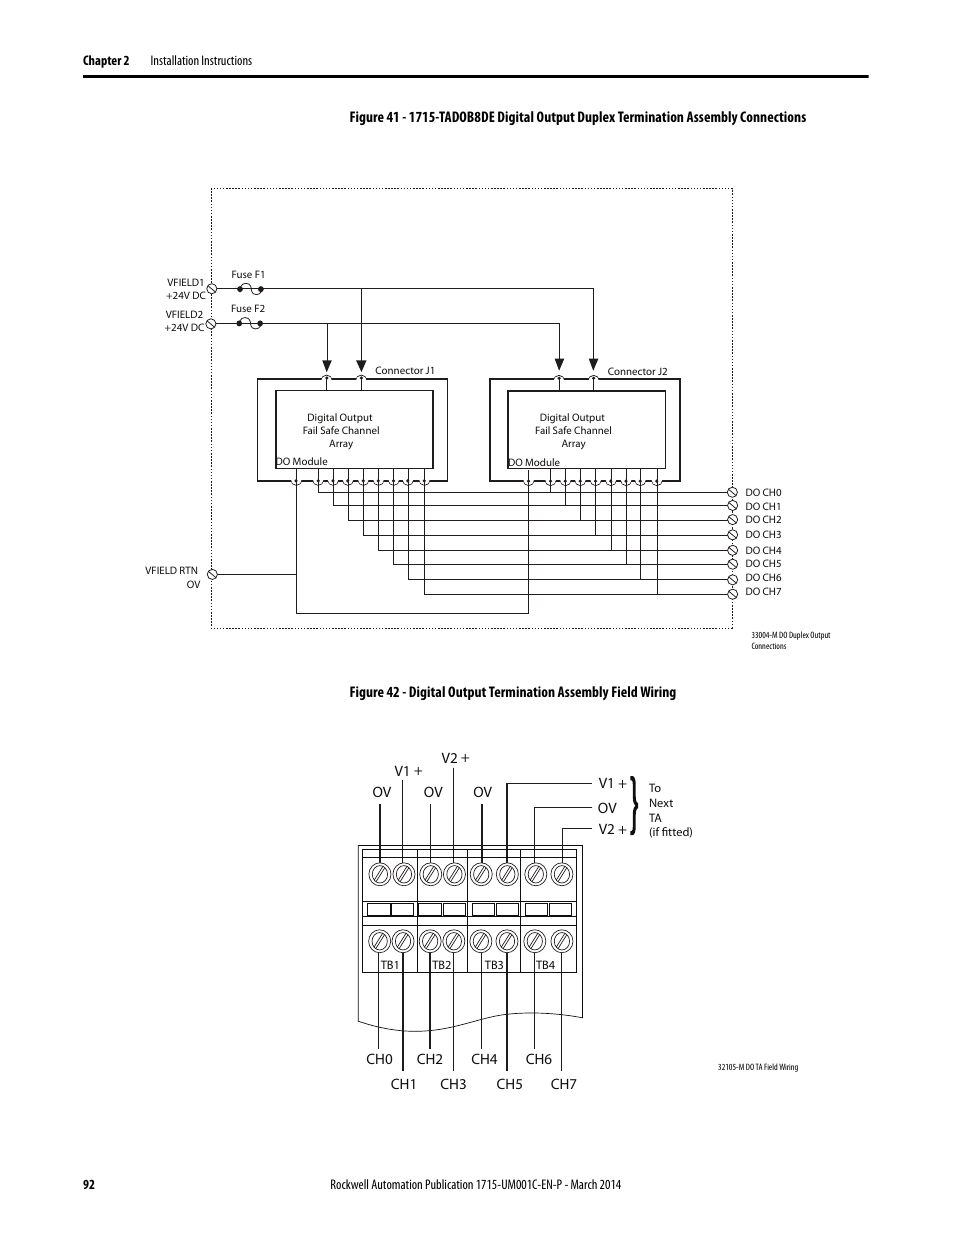 Rockwell Automation 1715-OF8I Redundant I/O System User Manual User Manual | Page 92 / 324 | Also for: 1715-IF16 Redundant I/O System User Manual, ...